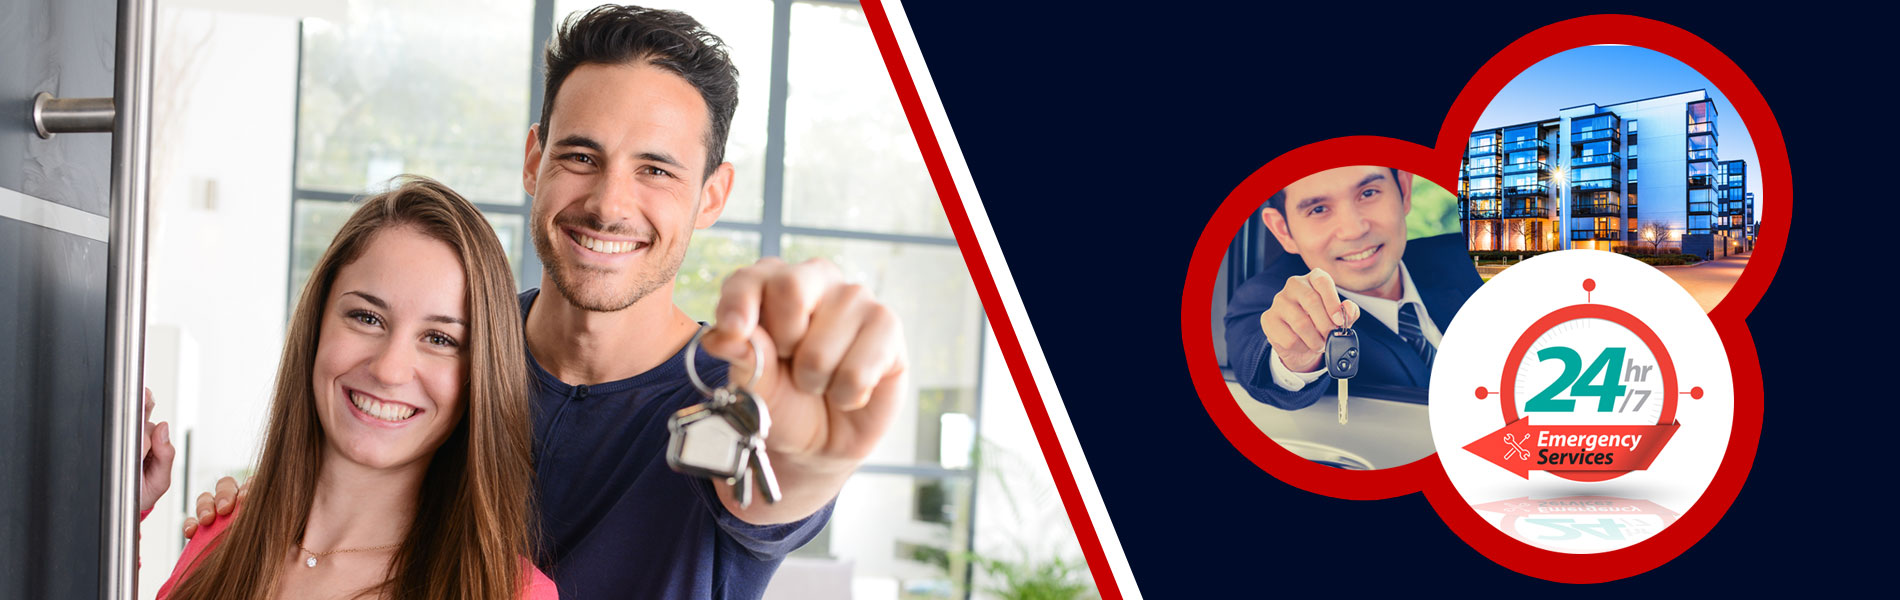 Windsor Locksmith Store Windsor, CT 860-359-9168